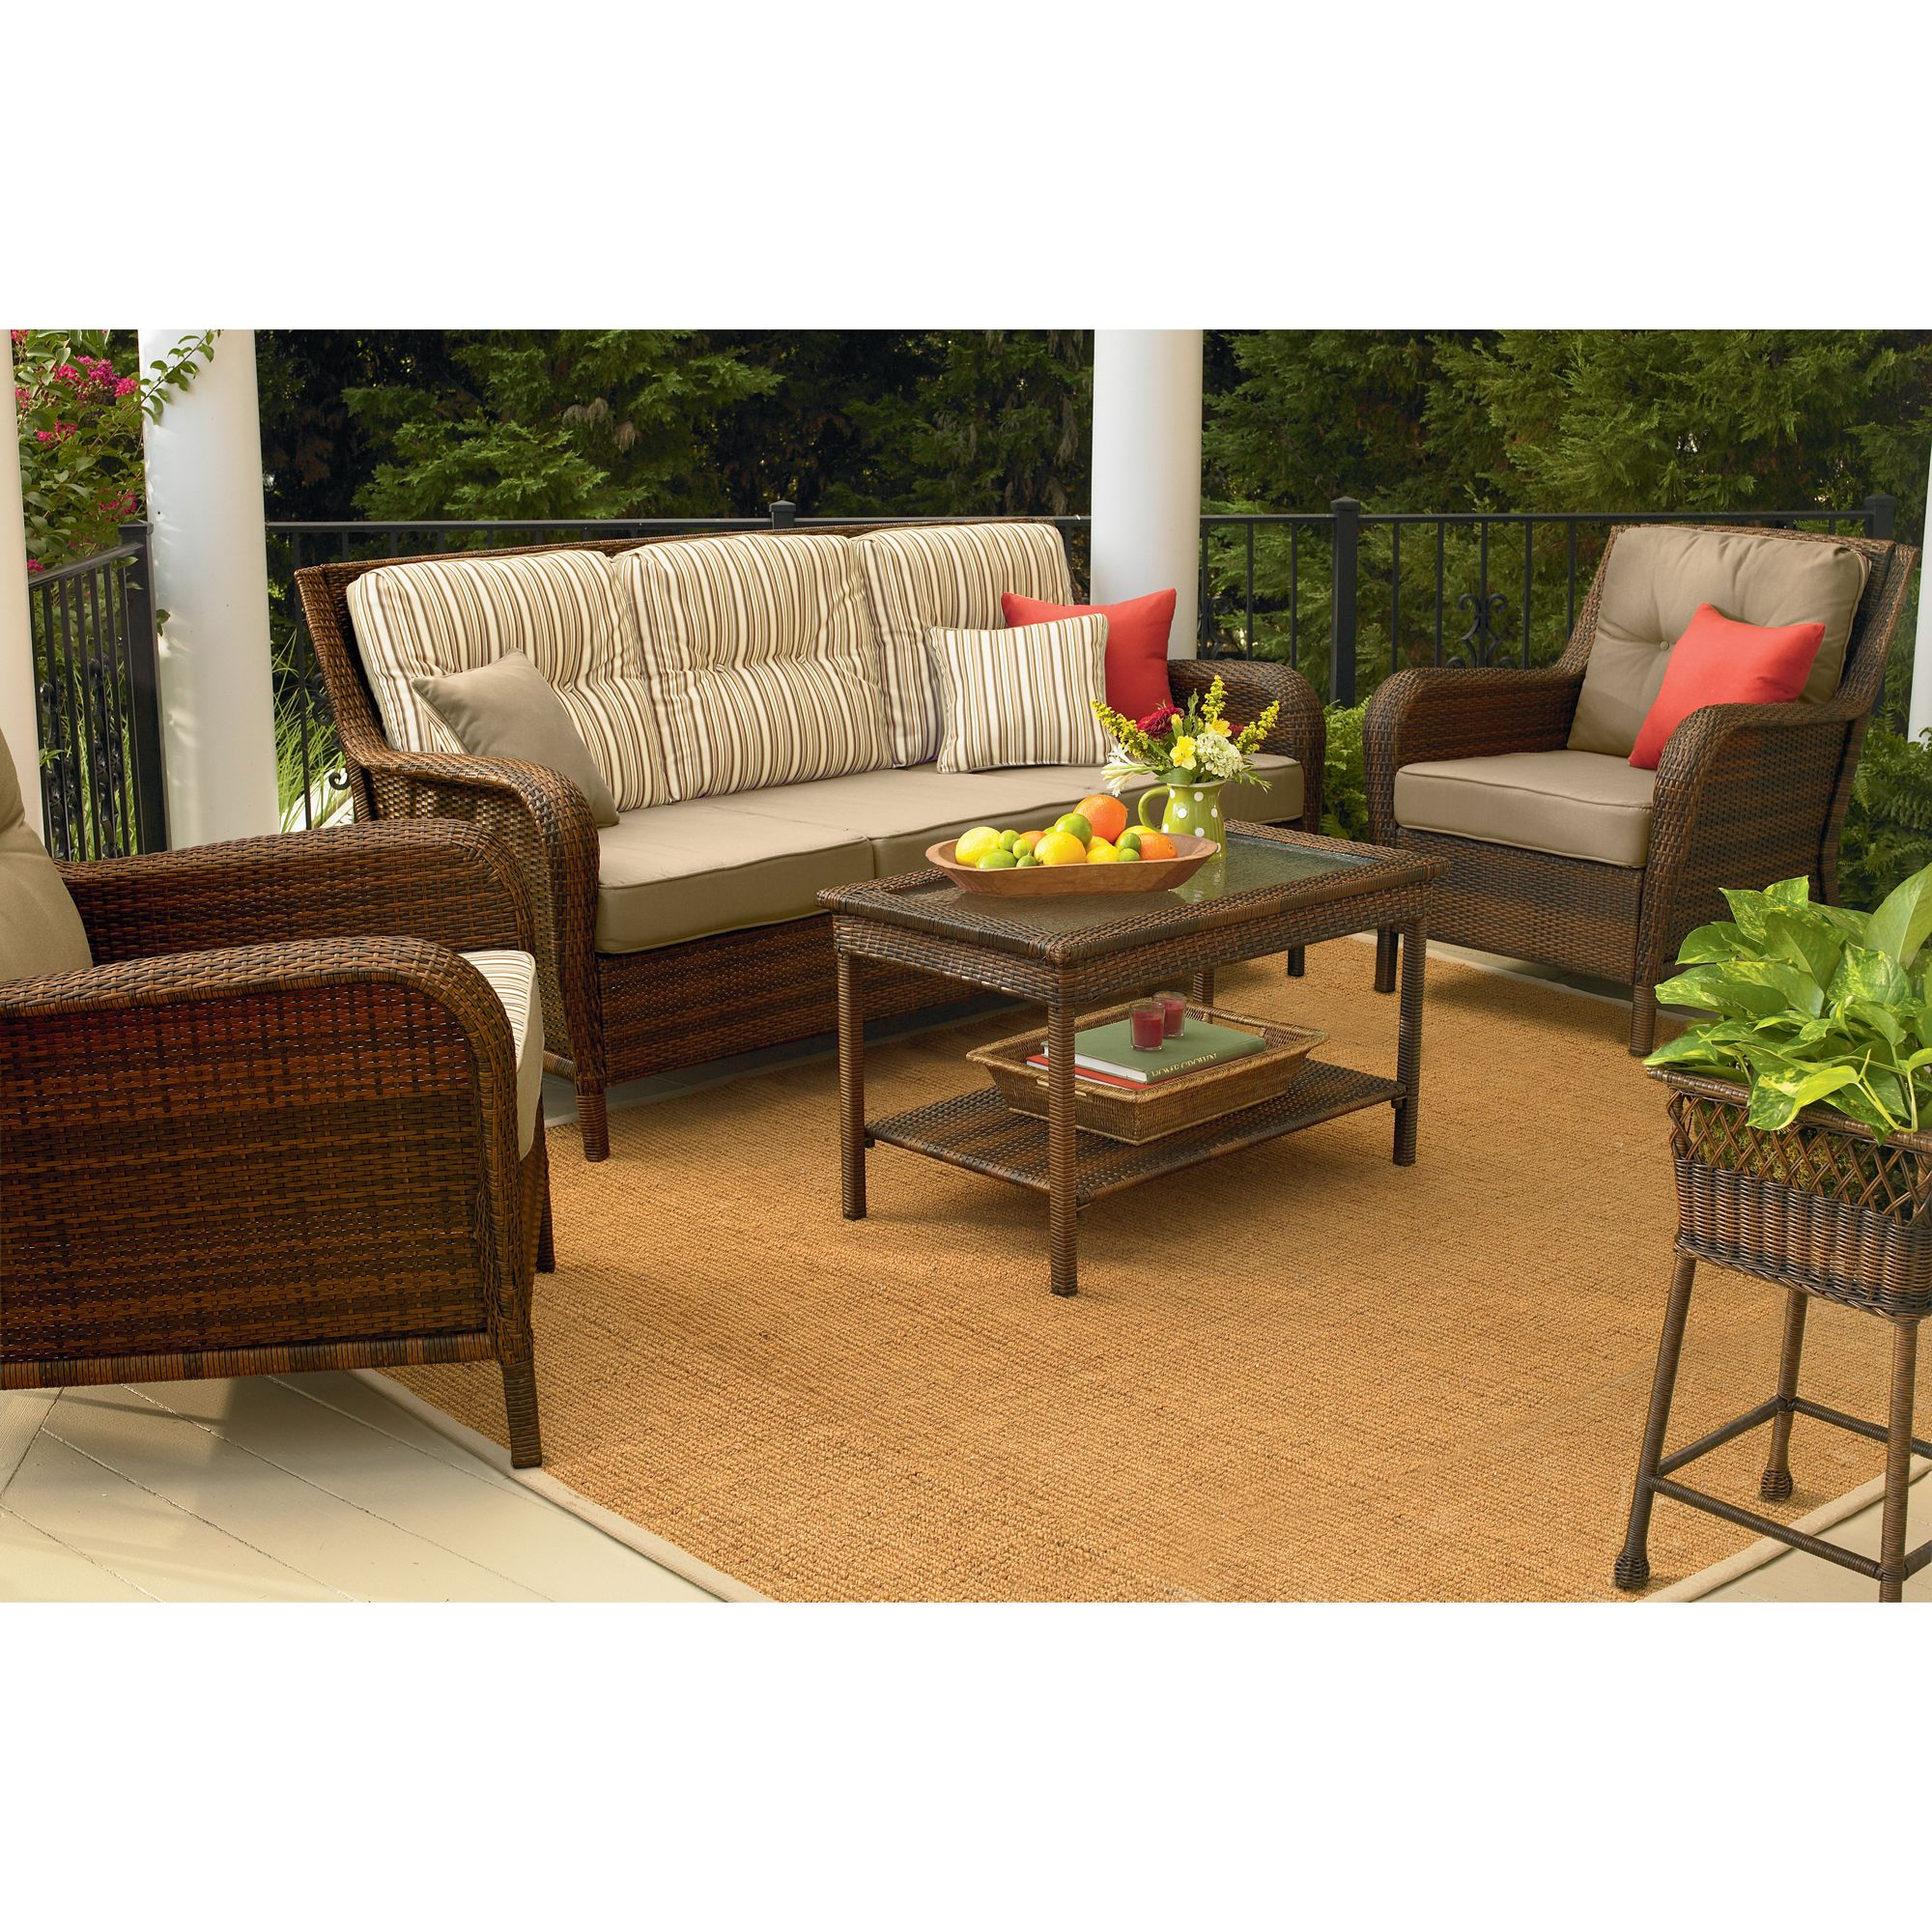 Mayfield Wicker Patio Sofa Transform Outdoor Style